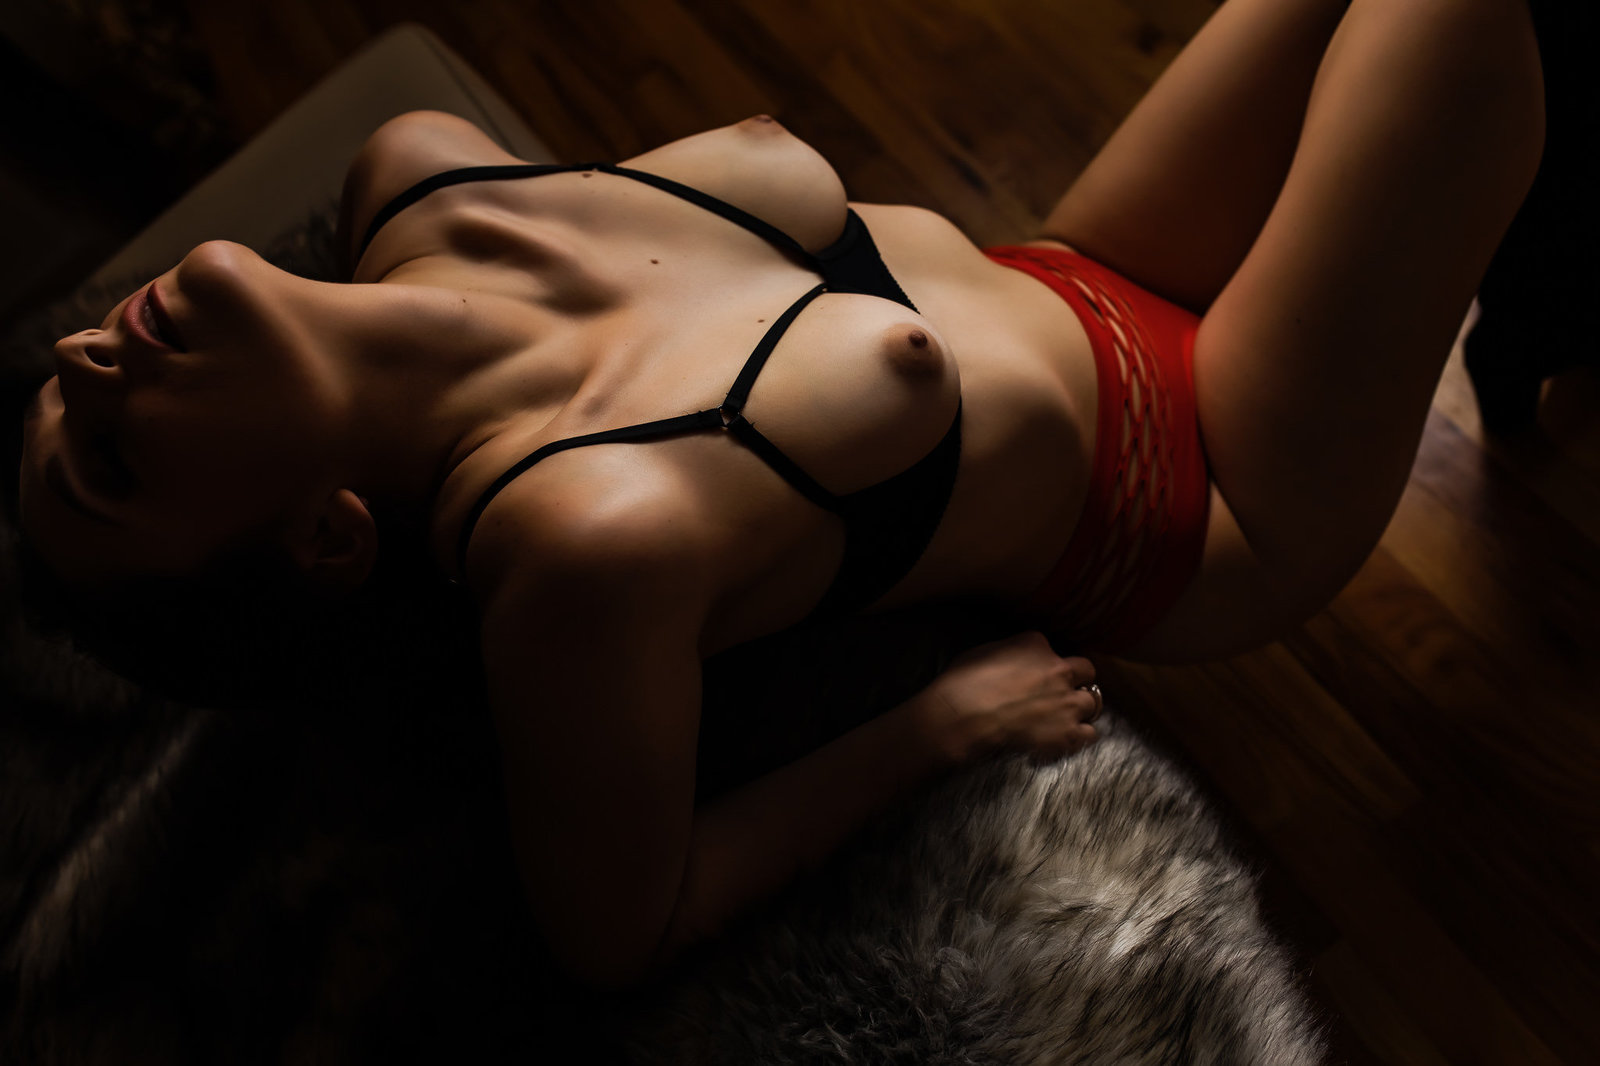 Erotic topless boudoir photo of a woman